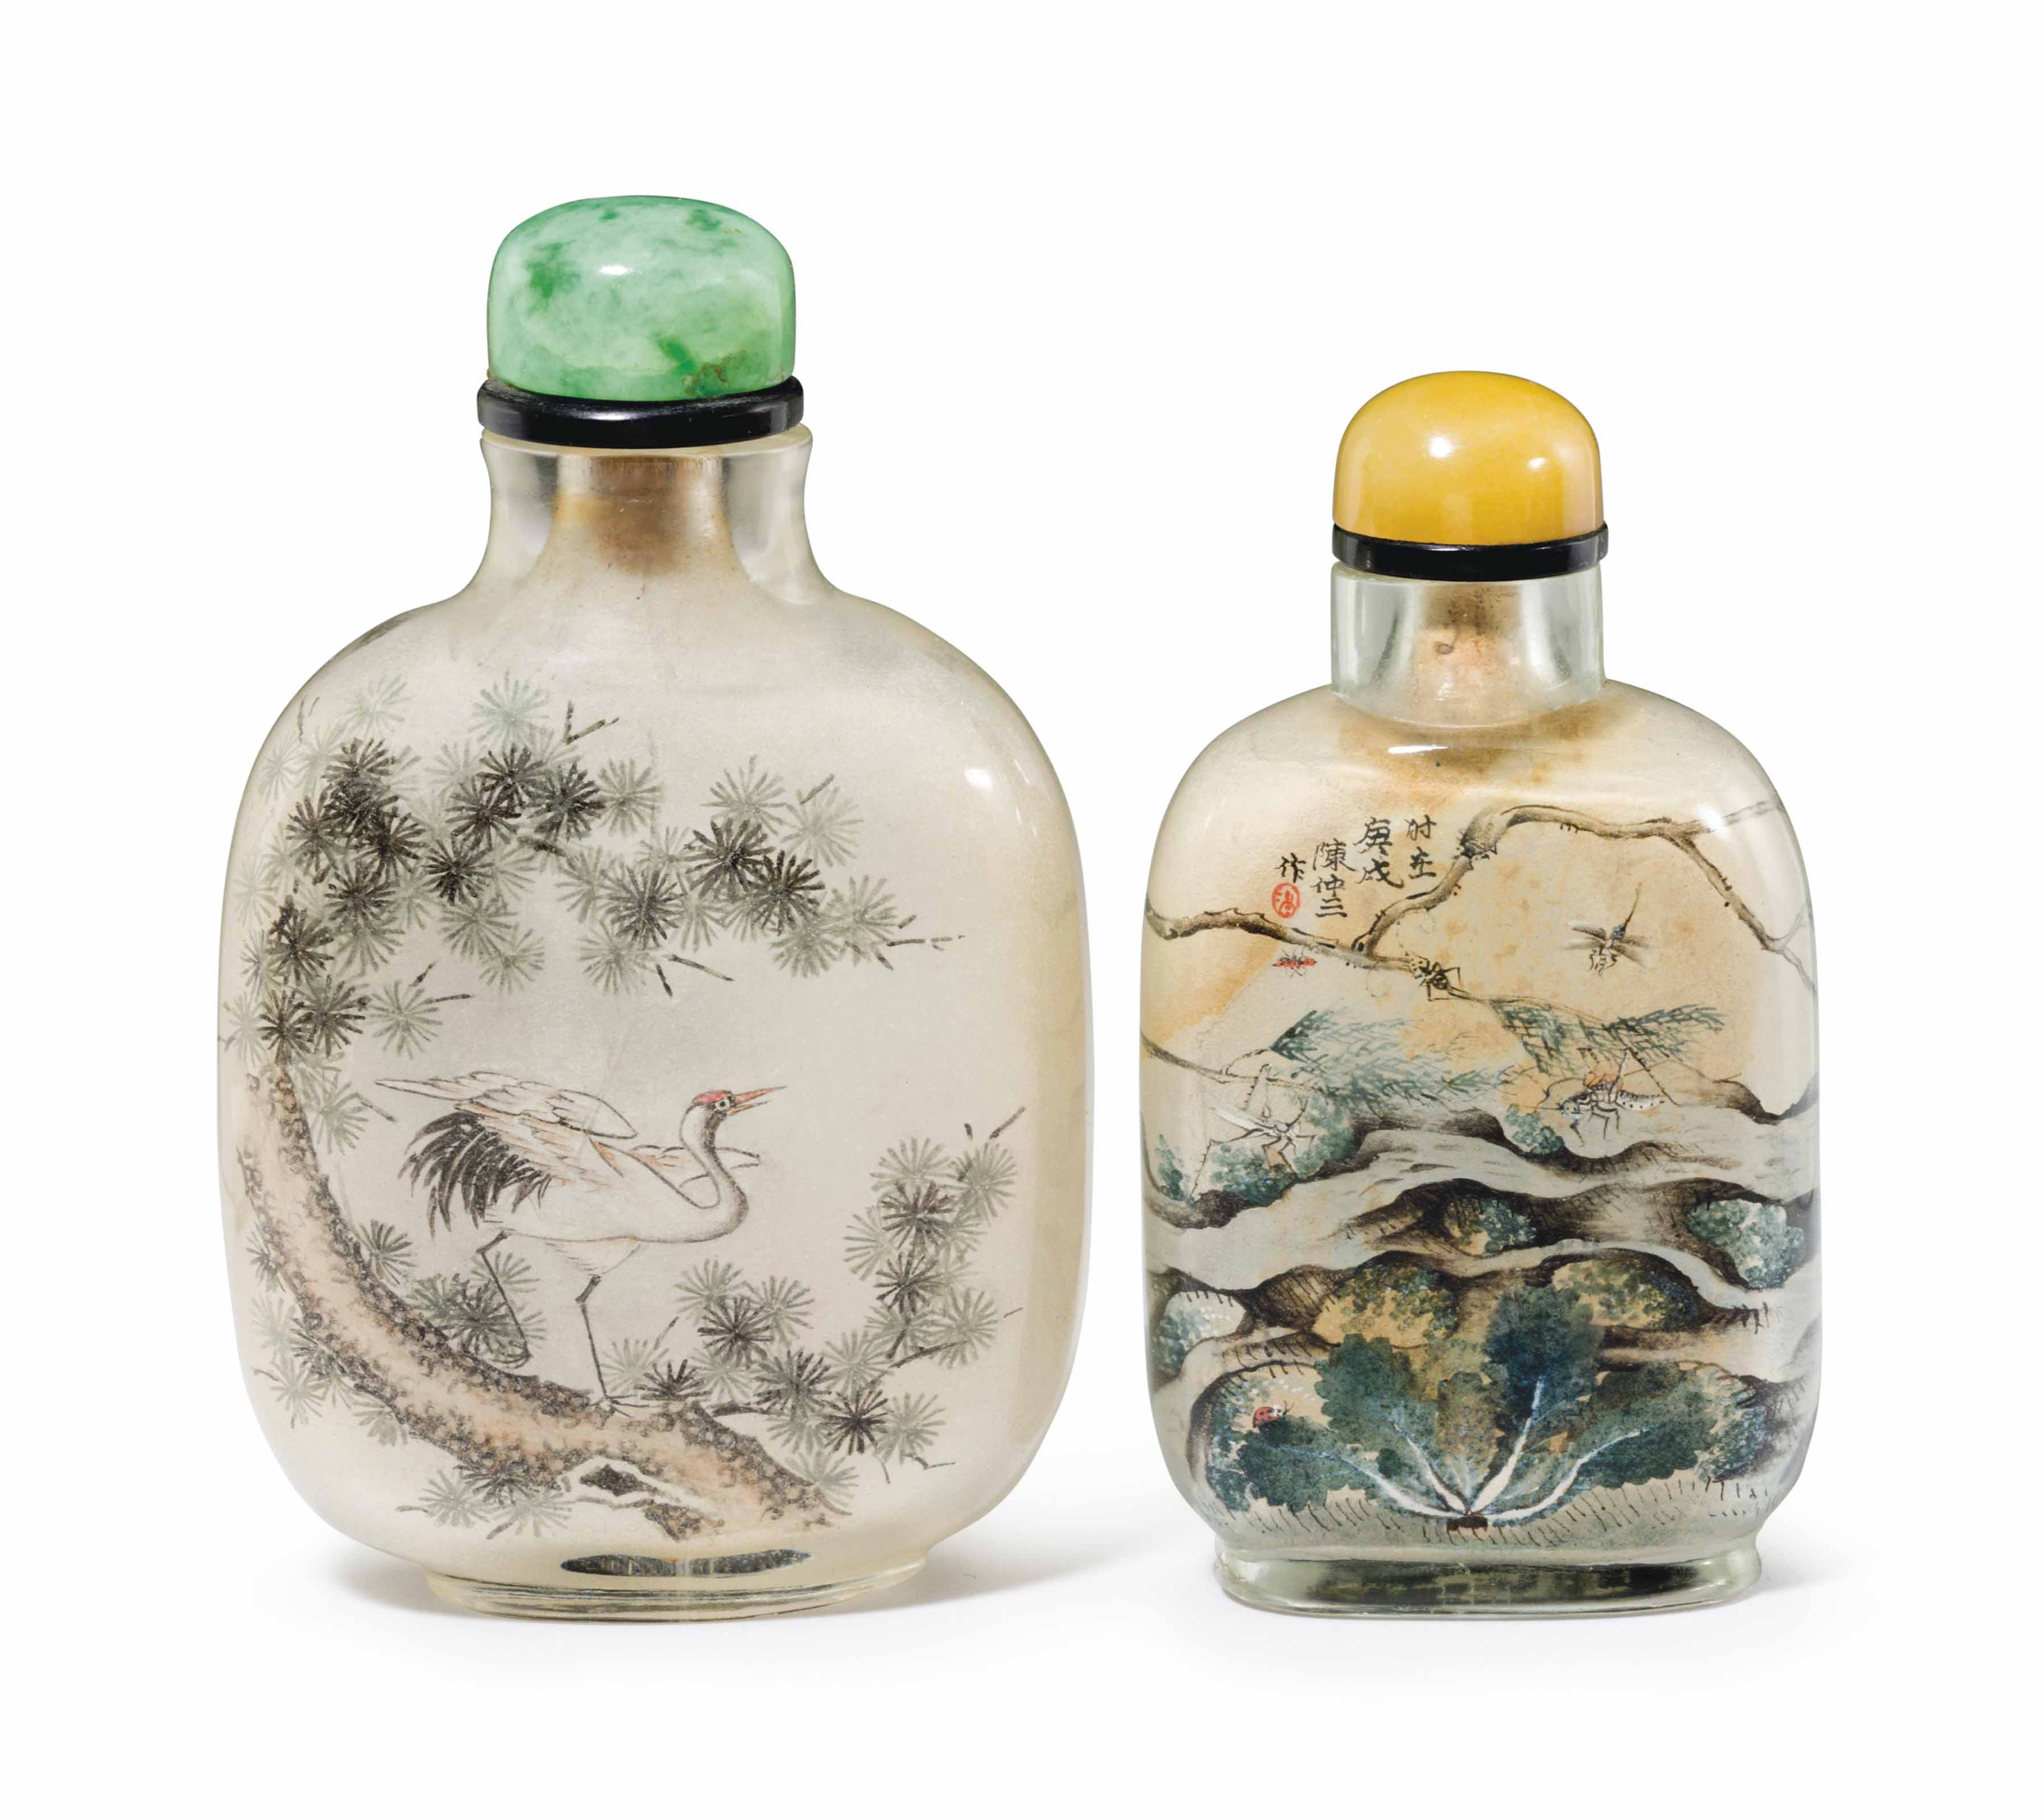 TWO INSIDE-PAINTED GLASS SNUFF